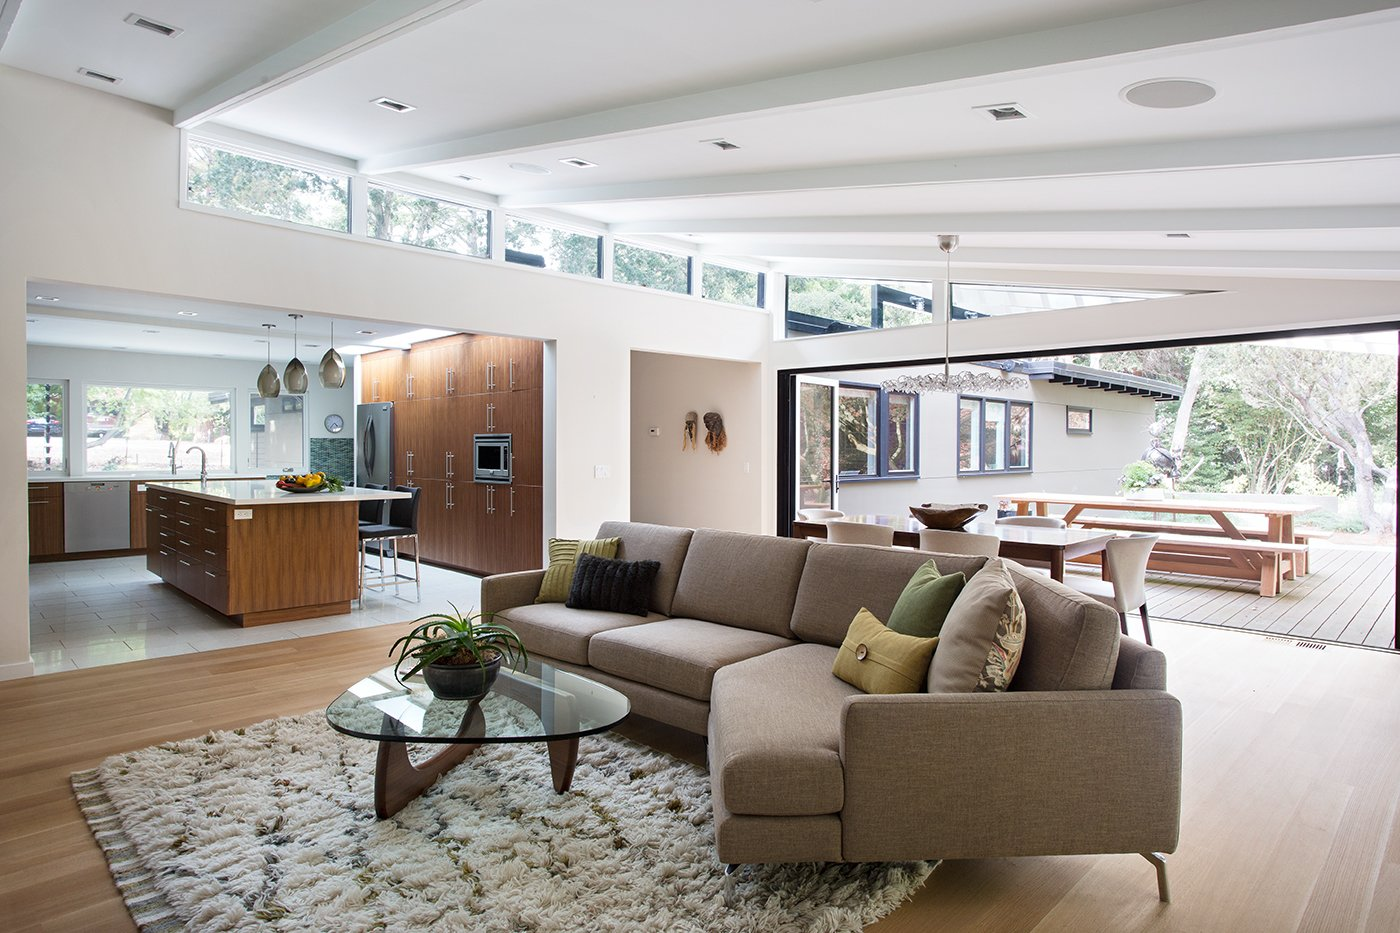 """Living Room, Sofa, Chair, Rug Floor, and Light Hardwood Floor Lafayette Mid Century Modern Remodel   The owners of this property had been away from the Bay Area for many years, and looked forward to returning to an elegant mid-century modern house. The one they bought was anything but that. Faced with a """"remuddled"""" kitchen from one decade, a haphazard bedroom / family room addition from another, and an otherwise disjointed and generally run-down mid-century modern house, the owners asked Klopf Architecture and Envision Landscape Studio to re-imagine this house and property as a unified, flowing, sophisticated, warm, modern indoor / outdoor living space for a family of five.   Opening up the spaces internally and from inside to out was the first order of business. The formerly disjointed eat-in kitchen with 7 foot high ceilings were opened up to the living room, re-oriented, and replaced with a spacious cook's kitchen complete with a row of skylights bringing light into the space. Adjacent the living room wall was completely opened up with La Cantina folding door system, connecting the interior living space to a new wood deck that acts as a continuation of the wood floor. People can flow from kitchen to the living / dining room and the deck seamlessly, making the main entertainment space feel at once unified and complete, and at the same time open and limitless.   Klopf opened up the bedroom with a large sliding panel, and turned what was once a large walk-in closet into an office area, again with a large sliding panel. The master bathroom has high windows all along one wall to bring in light, and a large wet room area for the shower and tub. The dark, solid roof structure over the patio was replaced with an open trellis that allows plenty of light, brightening the new deck area as well as the interior of the house. Located in Lafayette, CA this remodeled single-family house is 3,363 square foot, 4 bedroom, and 3.5 bathroom.   Klopf Architecture"""